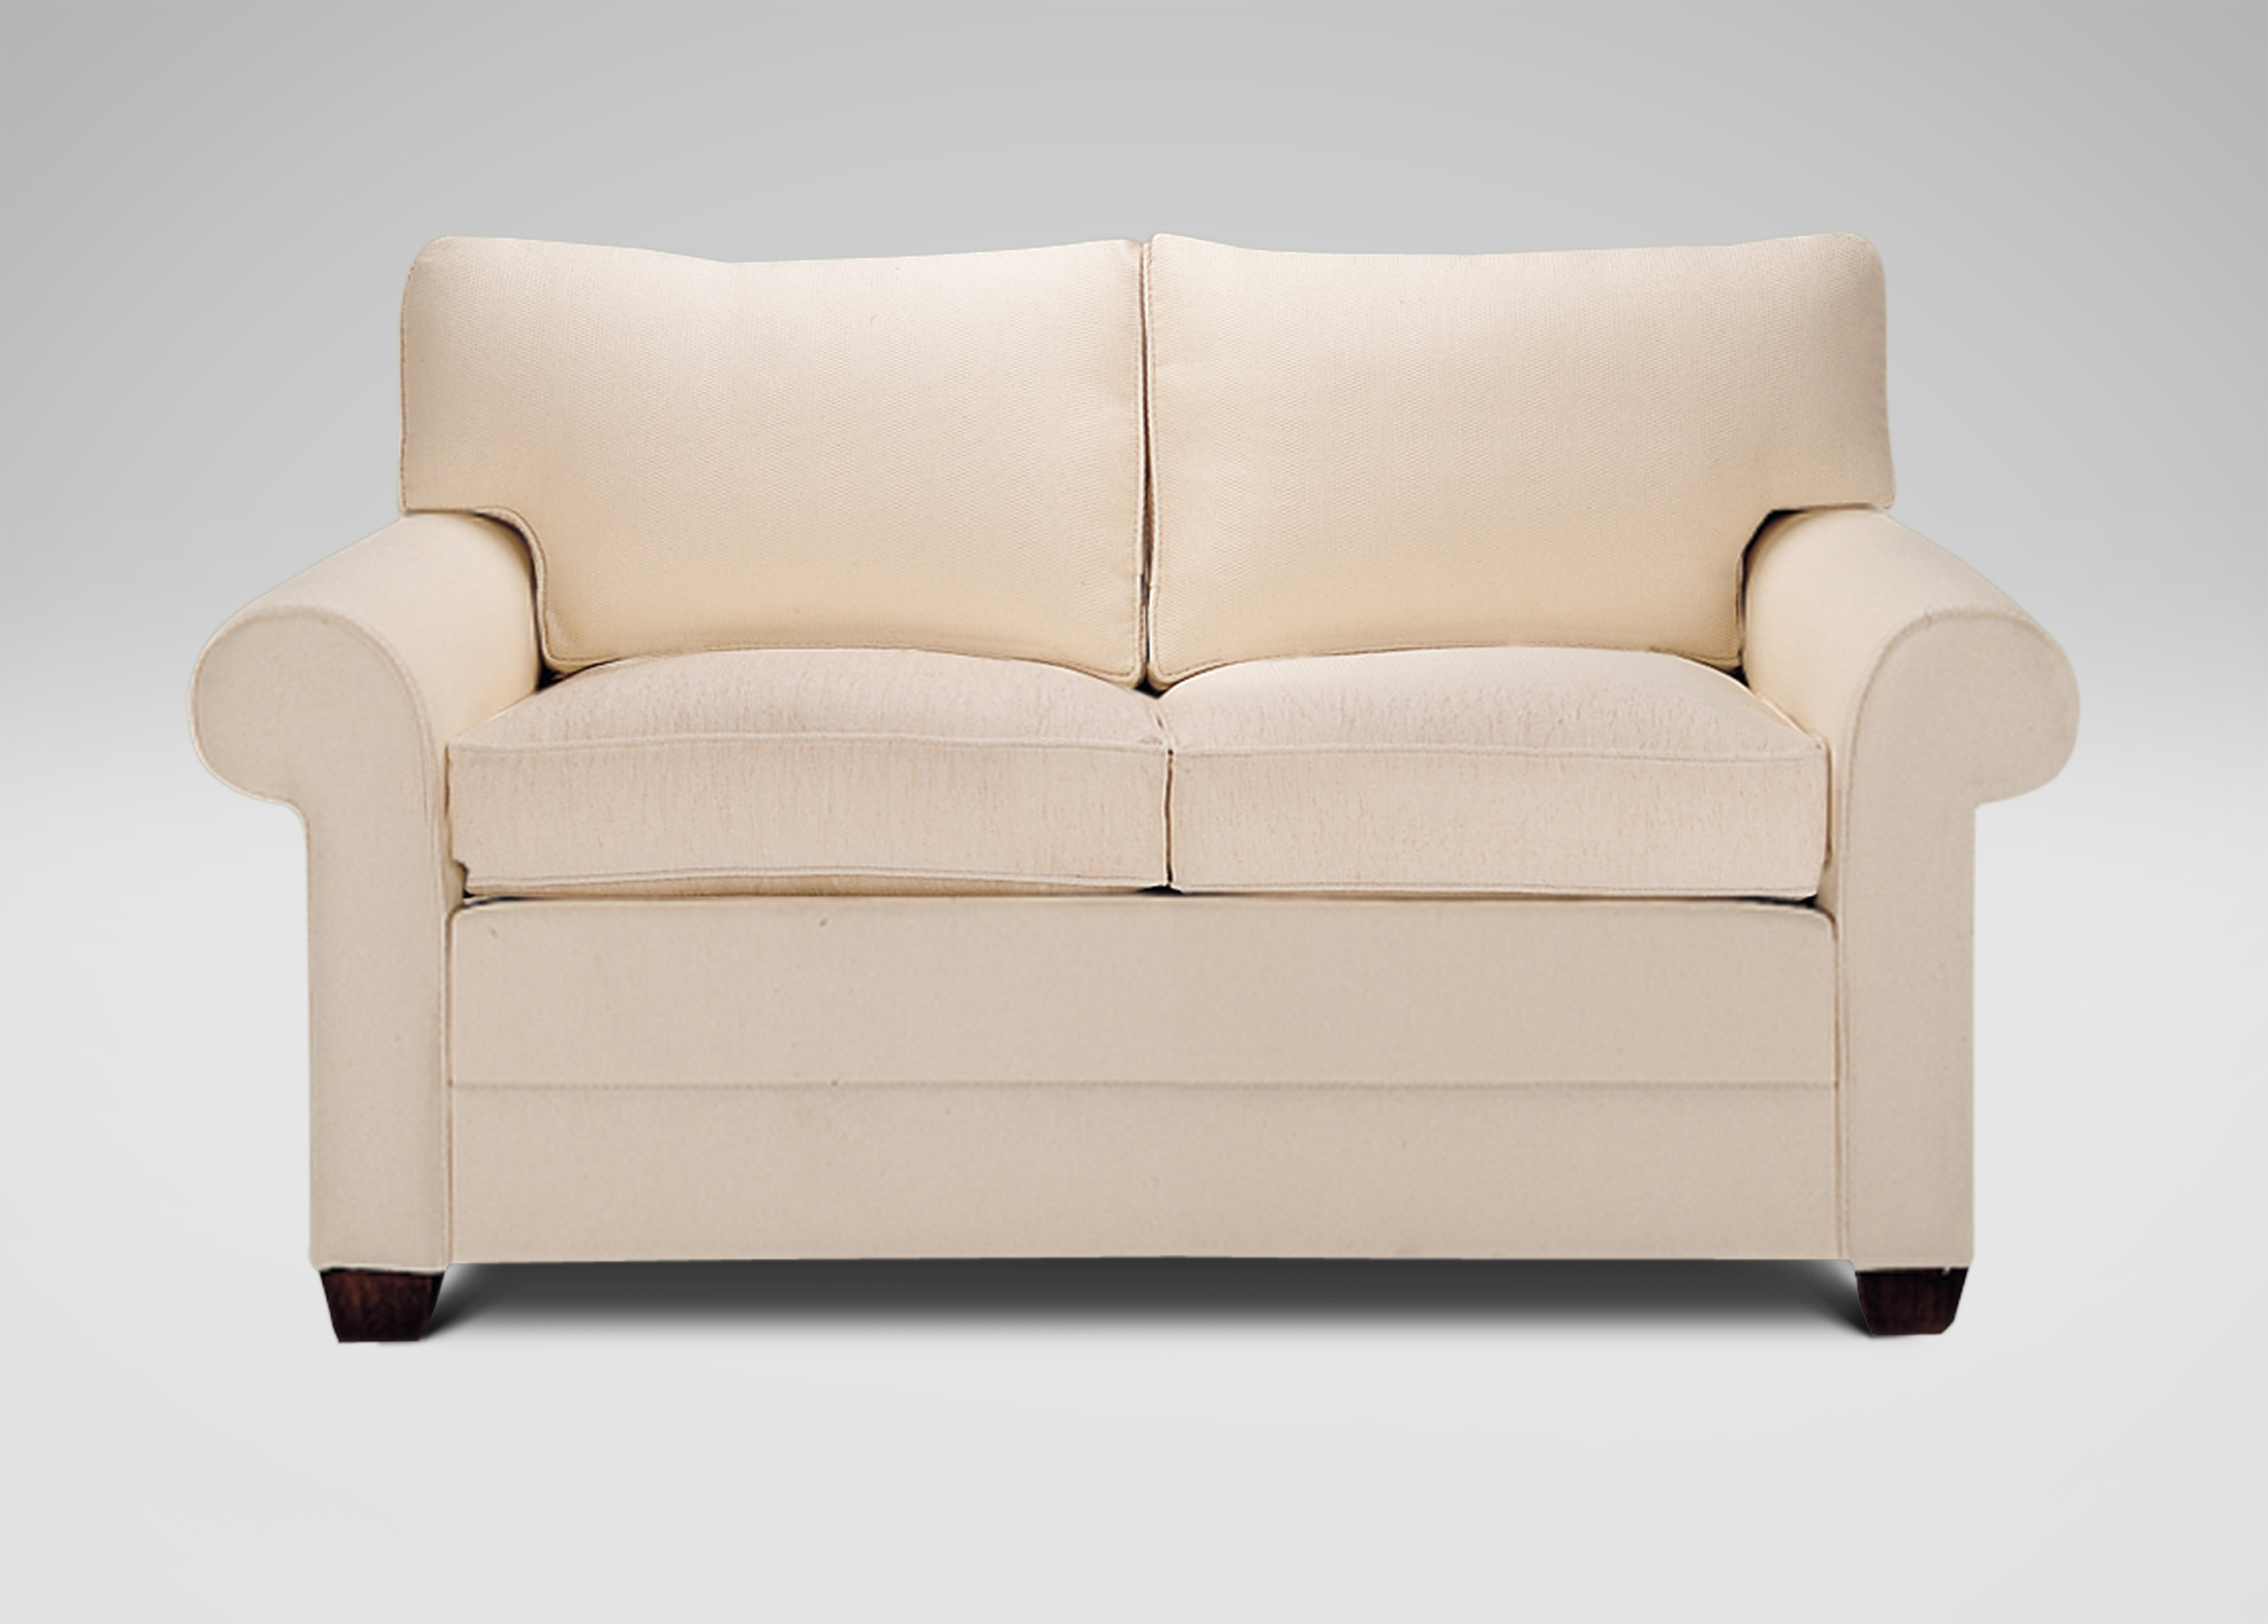 Bennett Roll Arm Loveseat – Ethan Allen Intended For 2018 Ethan Allen Sofas And Chairs (View 14 of 15)